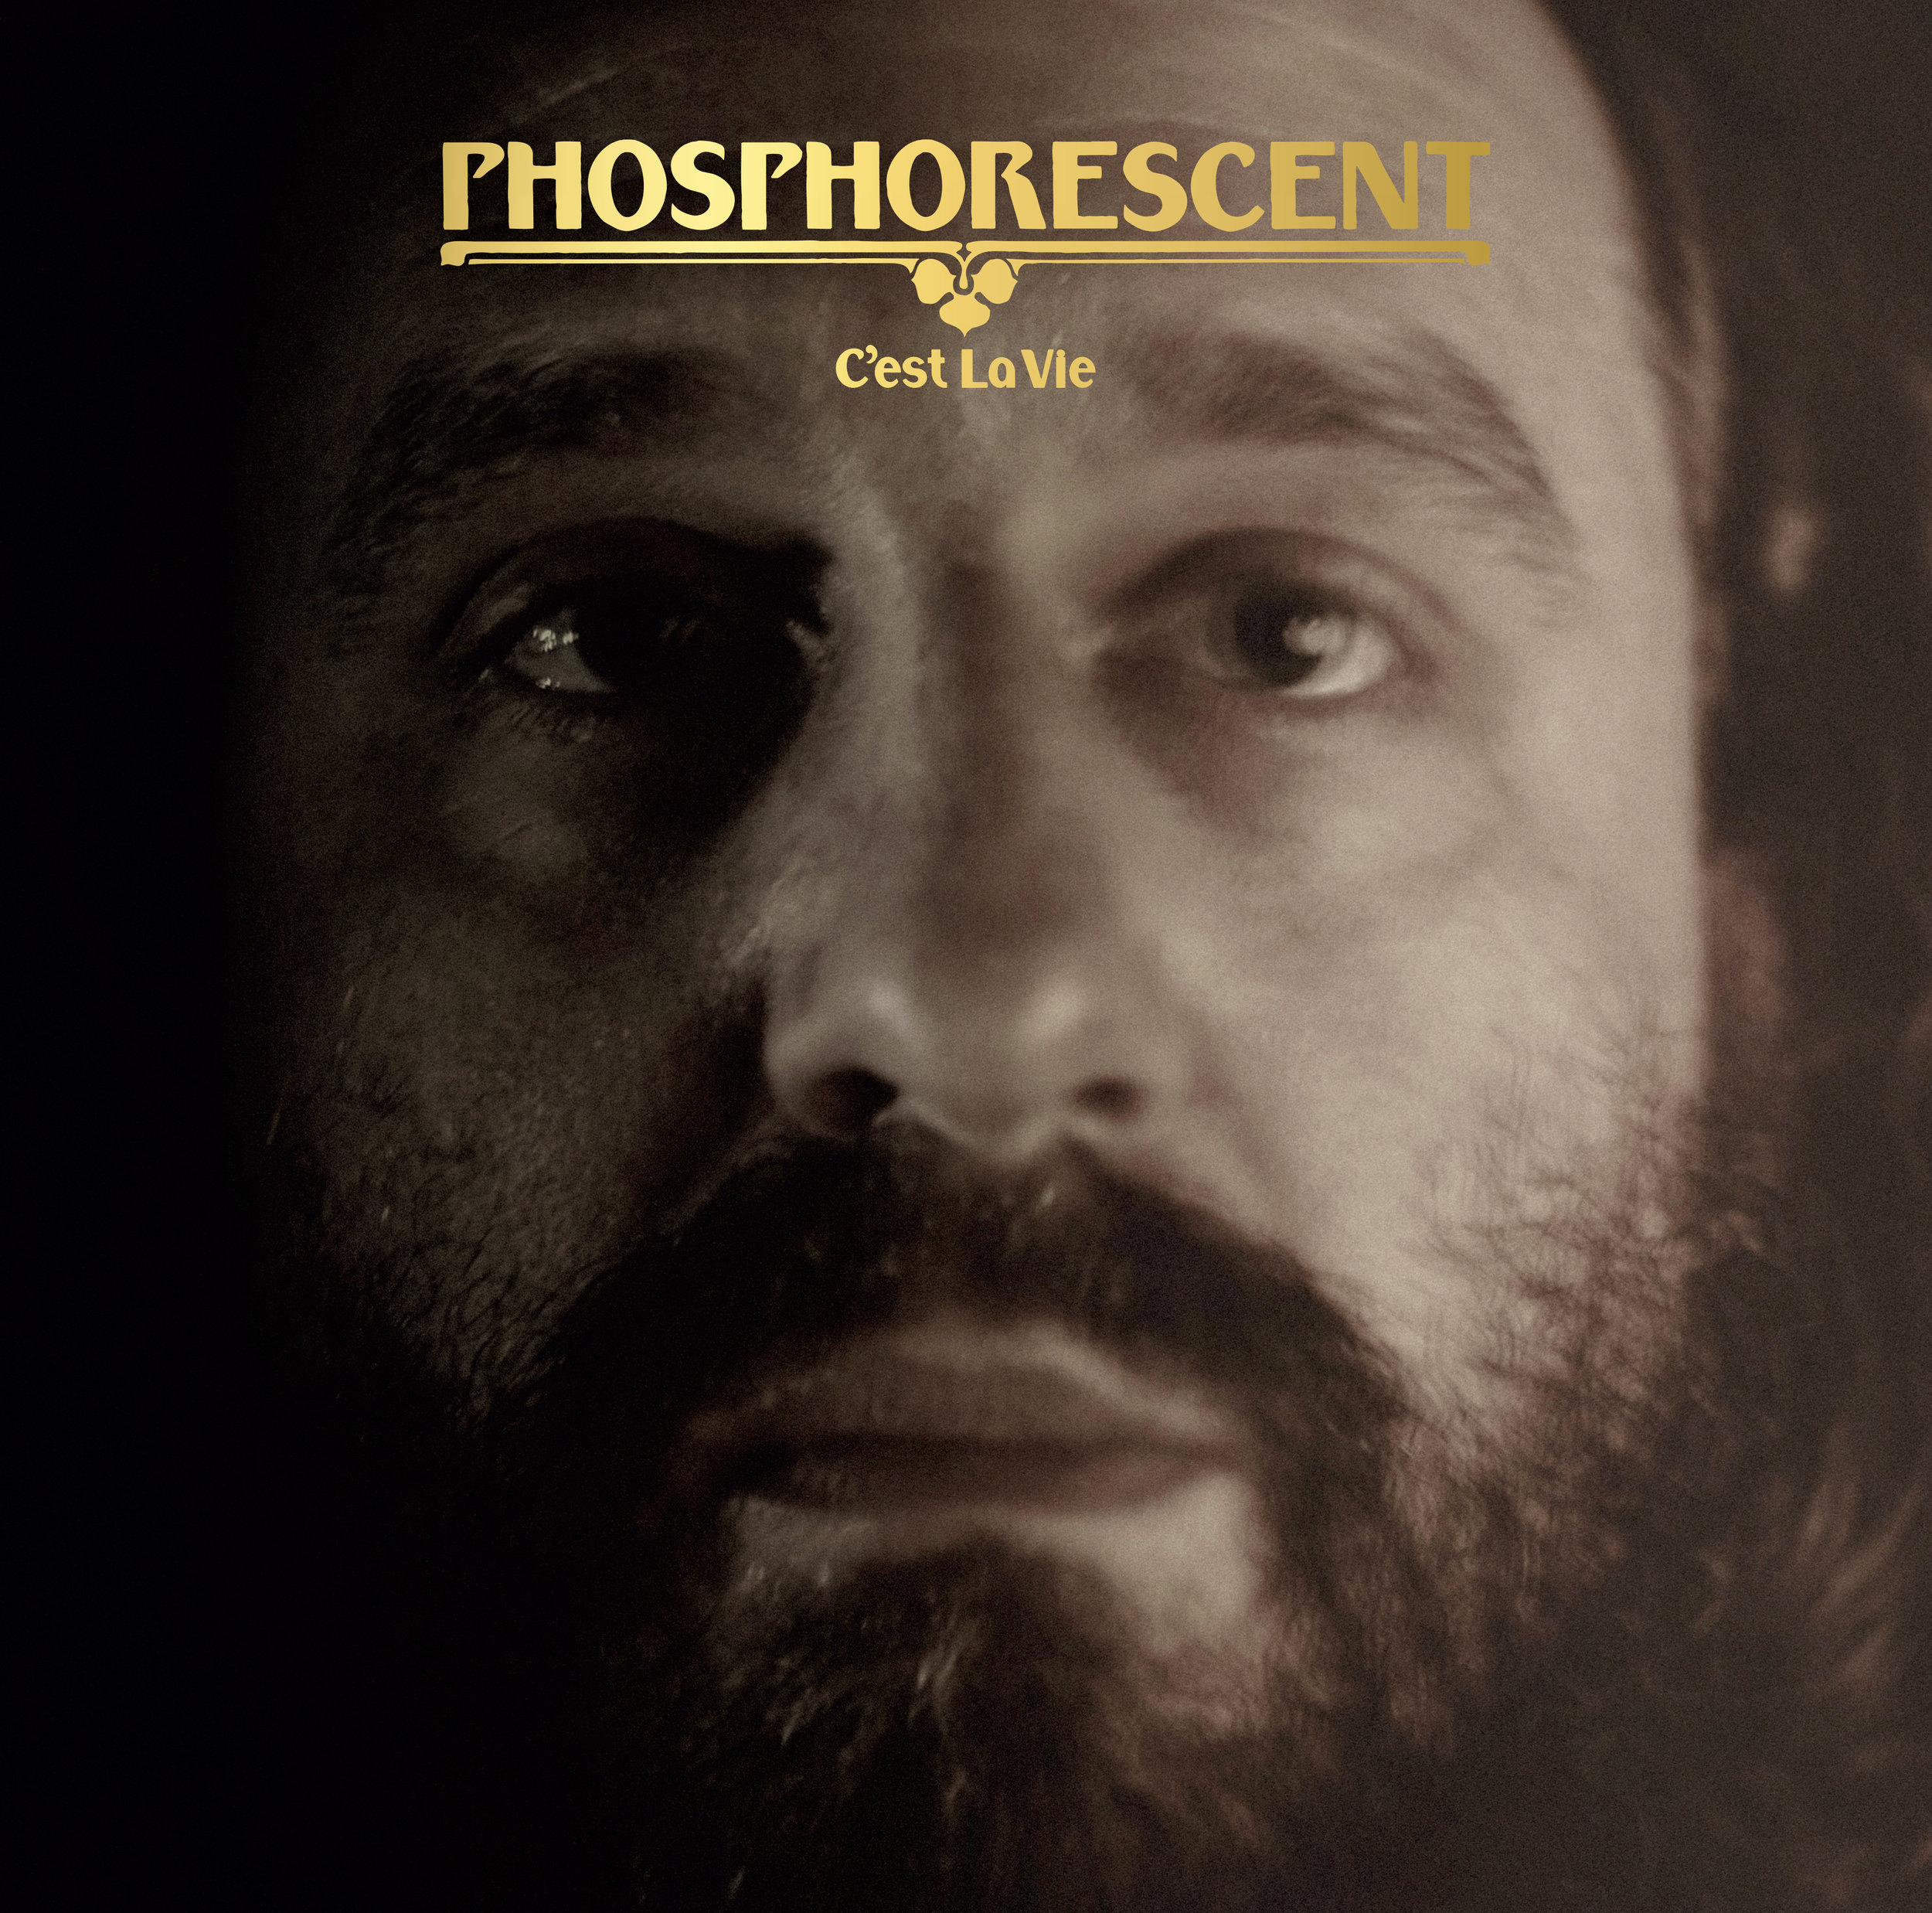 Phosphorescent-CestLaVie.jpg